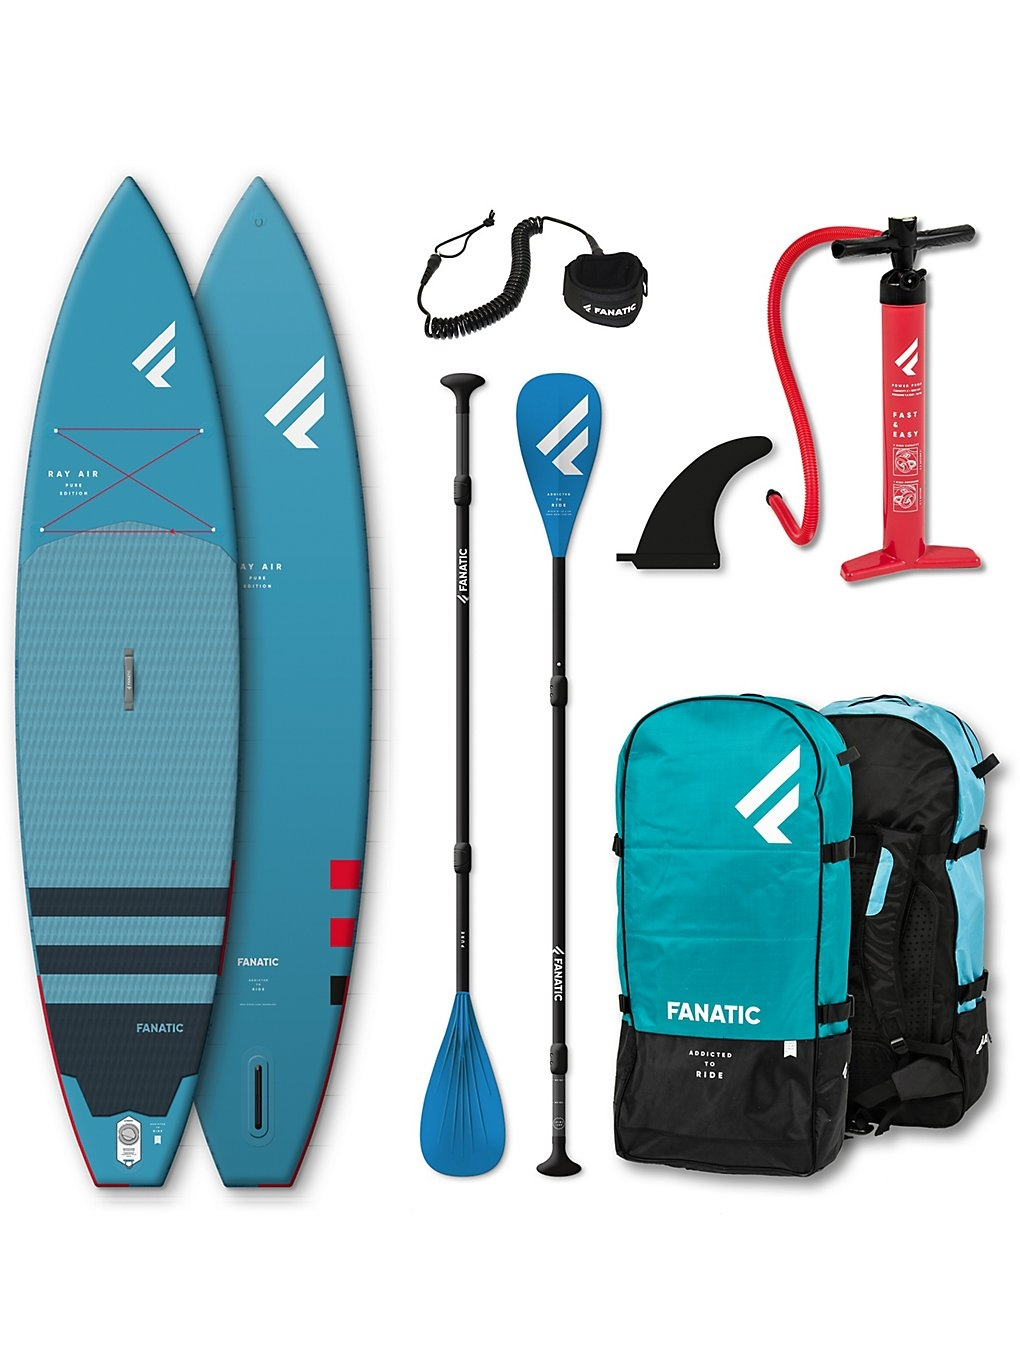 Fanatic Ray Air Premium 12'6″ SUP Stand Up Paddle Board 2019